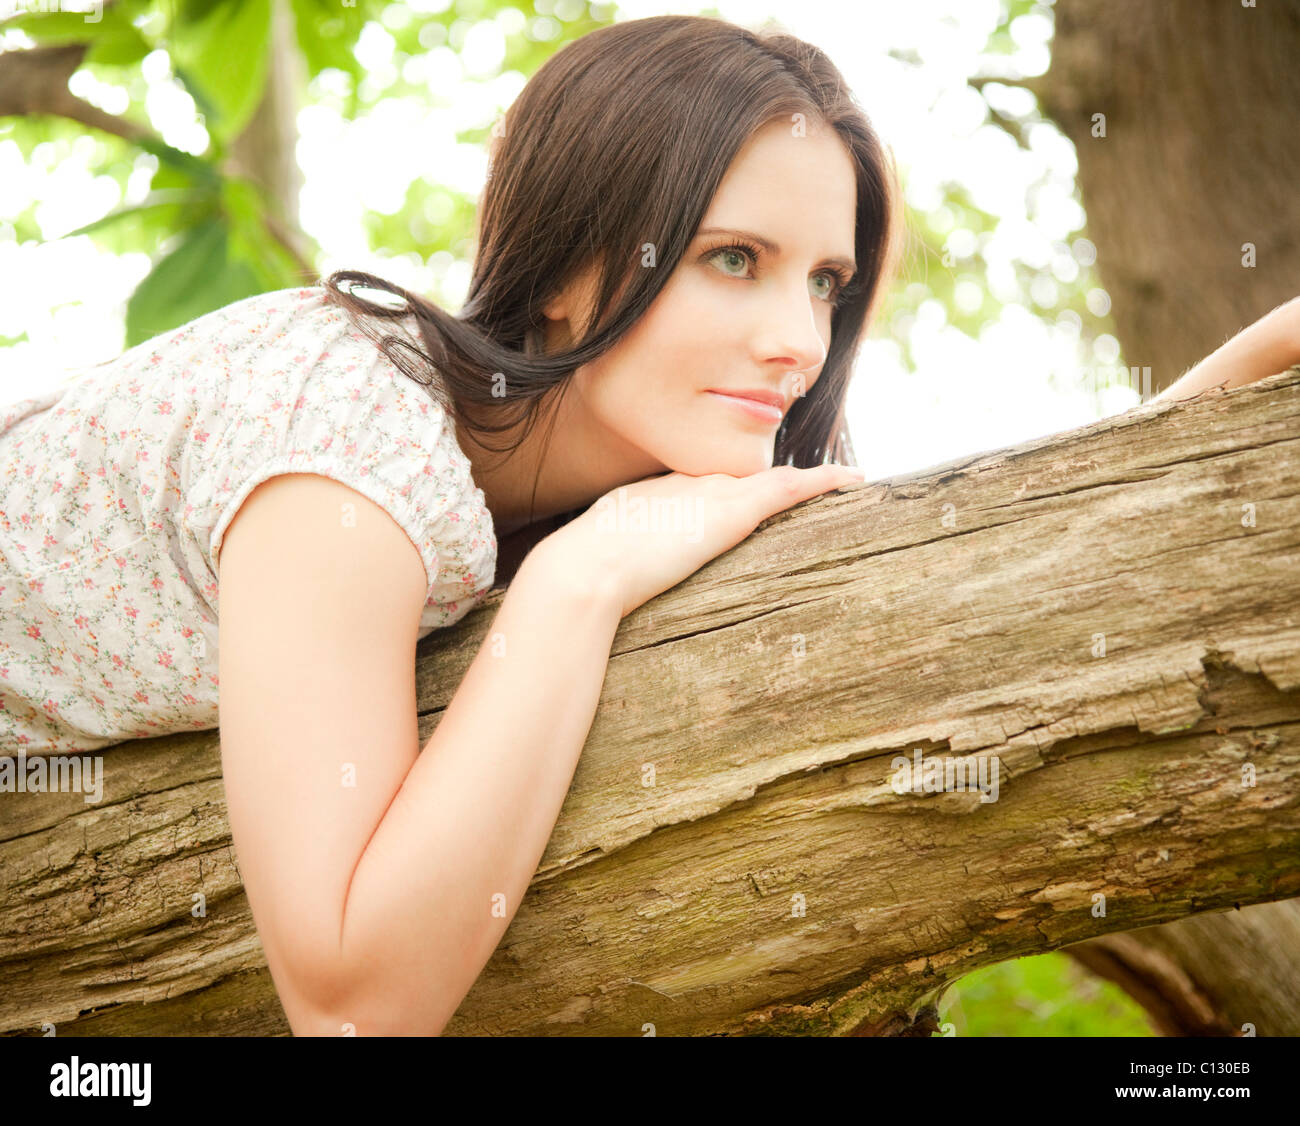 portrait of young woman lying on tree trunk - Stock Image